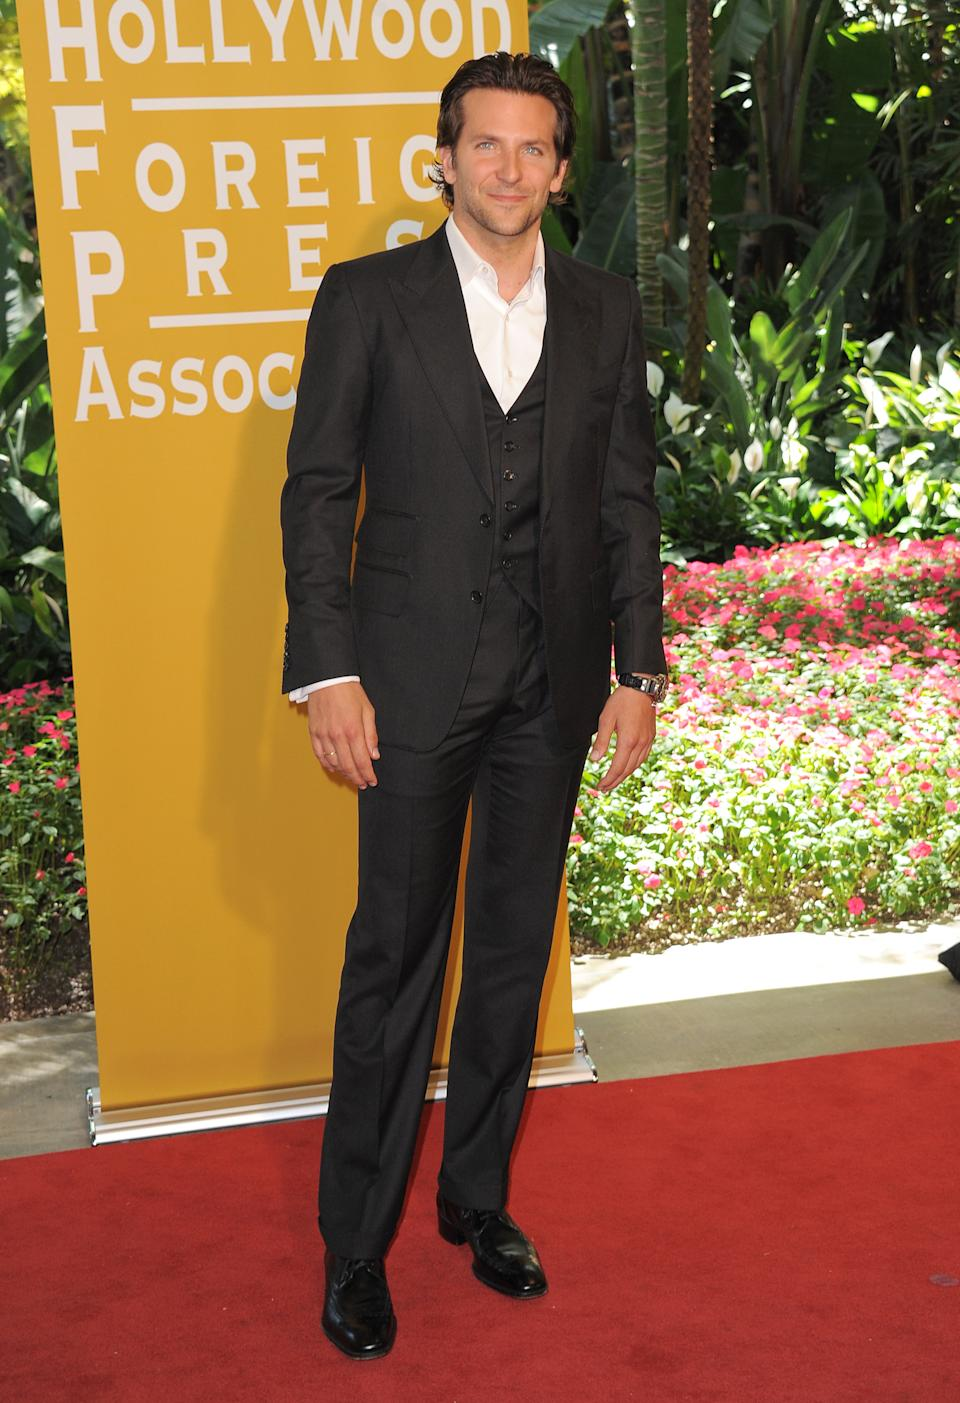 Bradley Cooper attends the Hollywood Foreign Press Association luncheon at the Beverly Hills Hotel on Thursday, Aug. 9, 2012, in Beverly Hills, Calif. (Photo by Jordan Strauss/Invision/AP)